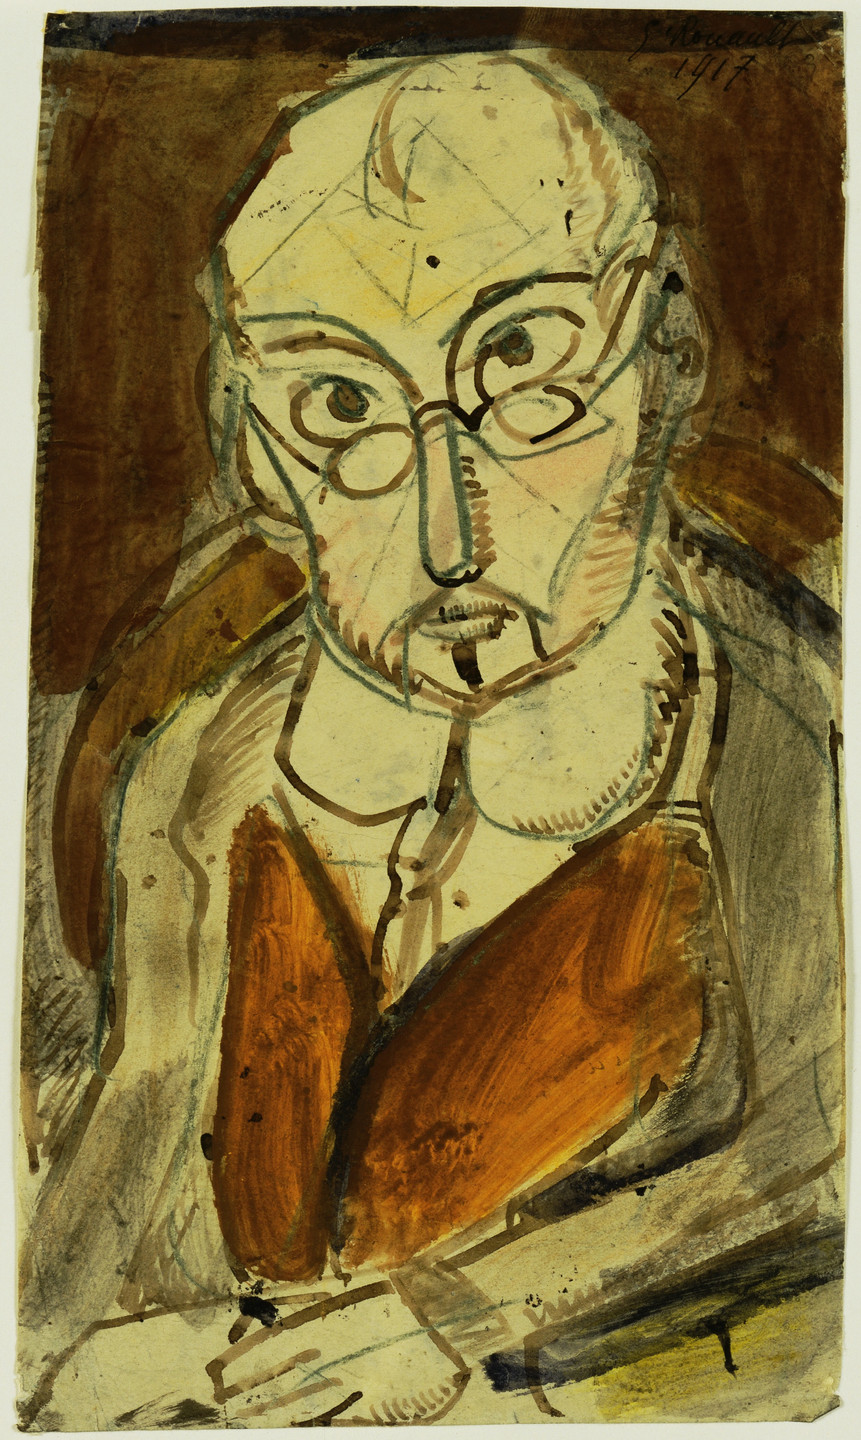 Georges Rouault. Man with Spectacles. 1917